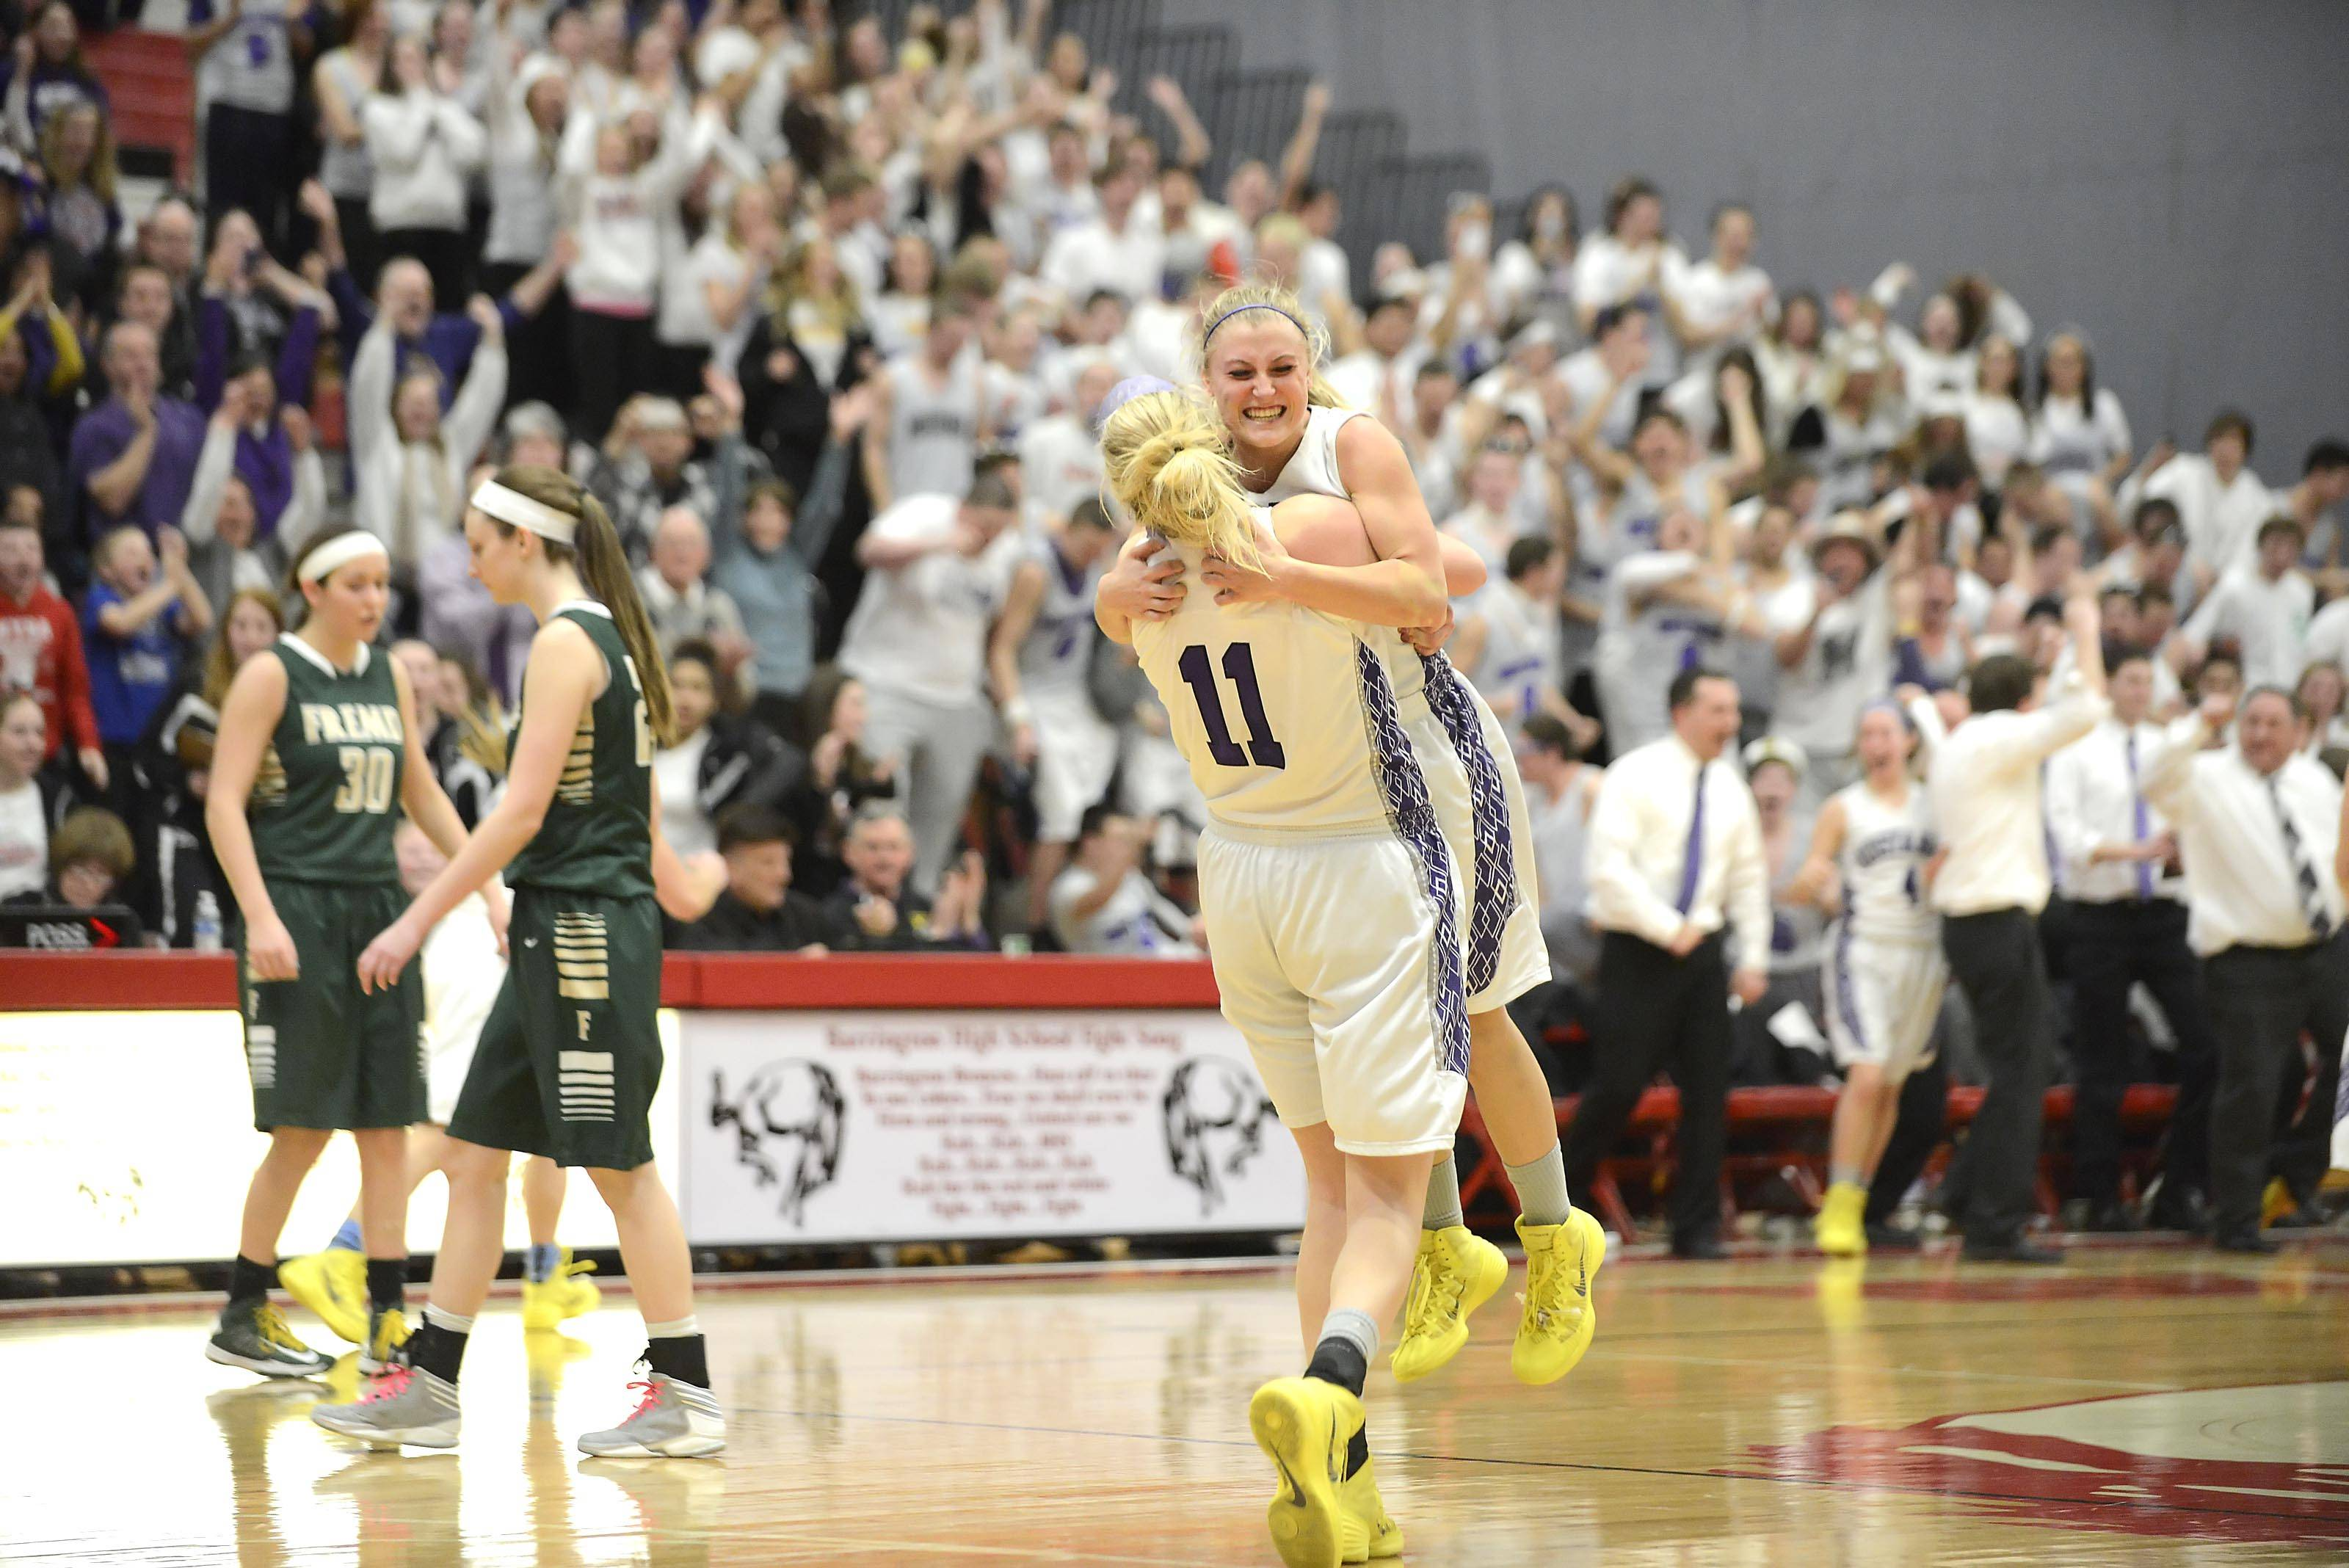 Rolling Meadows' Jackie Kemph is picked up by teammate Jenny Vliet as Fremd's players walk off the floor Thursday after the Barrington sectional championship game.